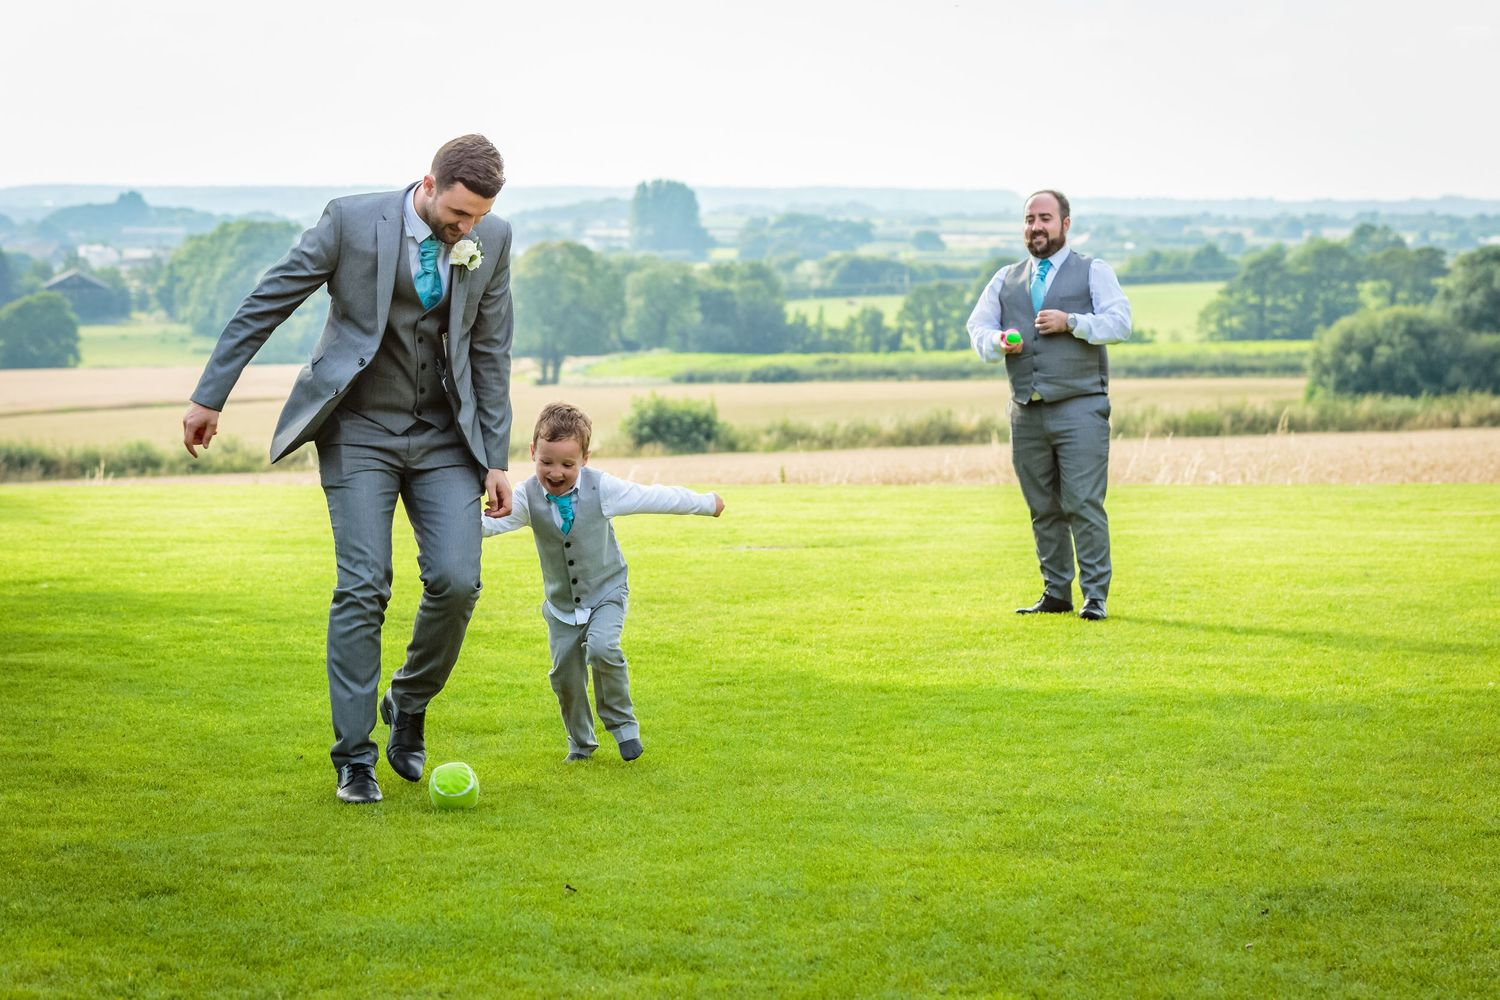 pageboy playing football with the best man tries to get the ball off him